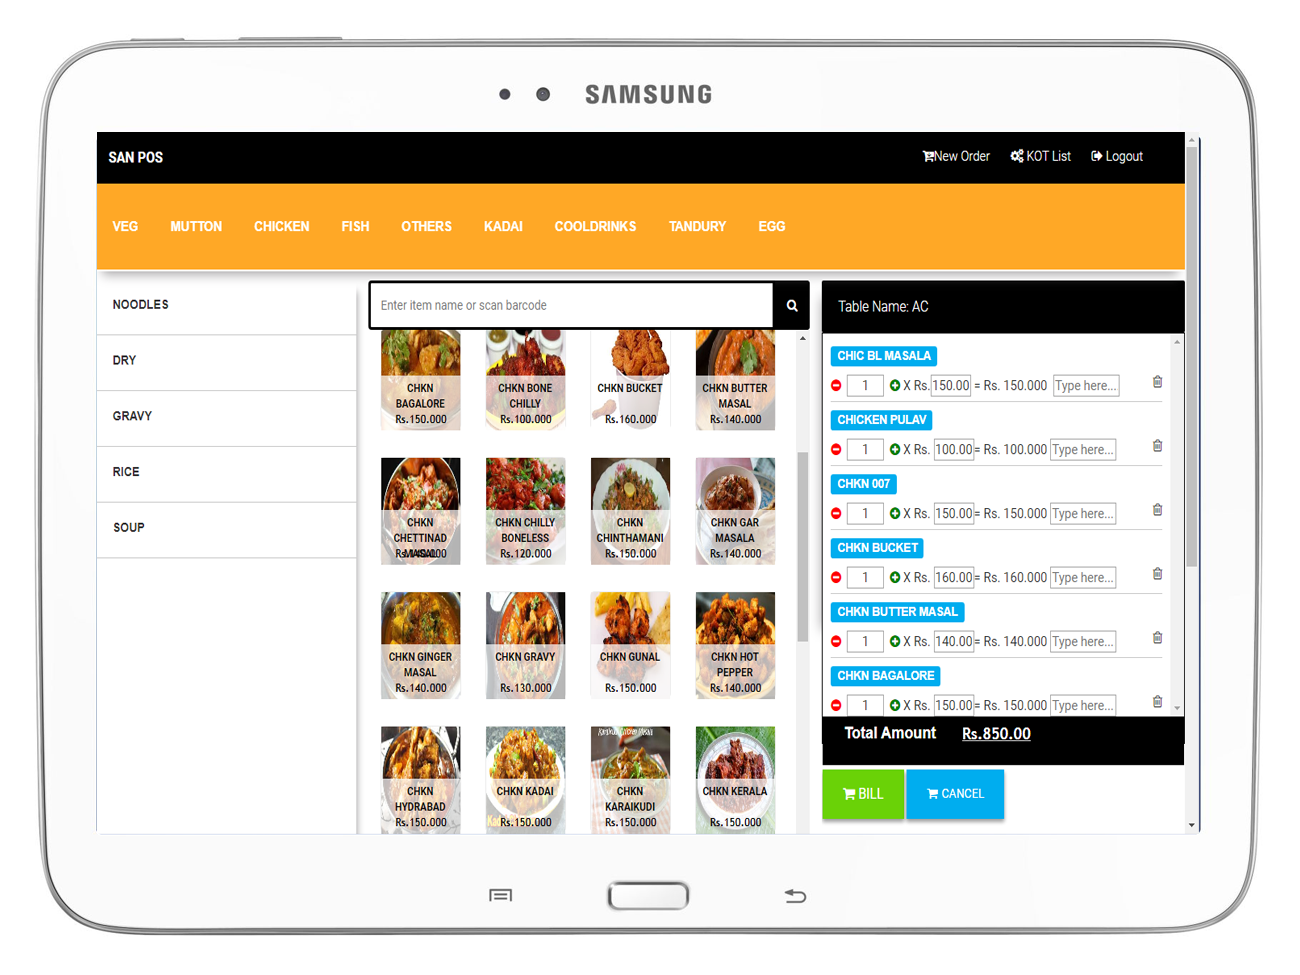 Restaurant Ordering App Android Source Code Github In Coimbatore